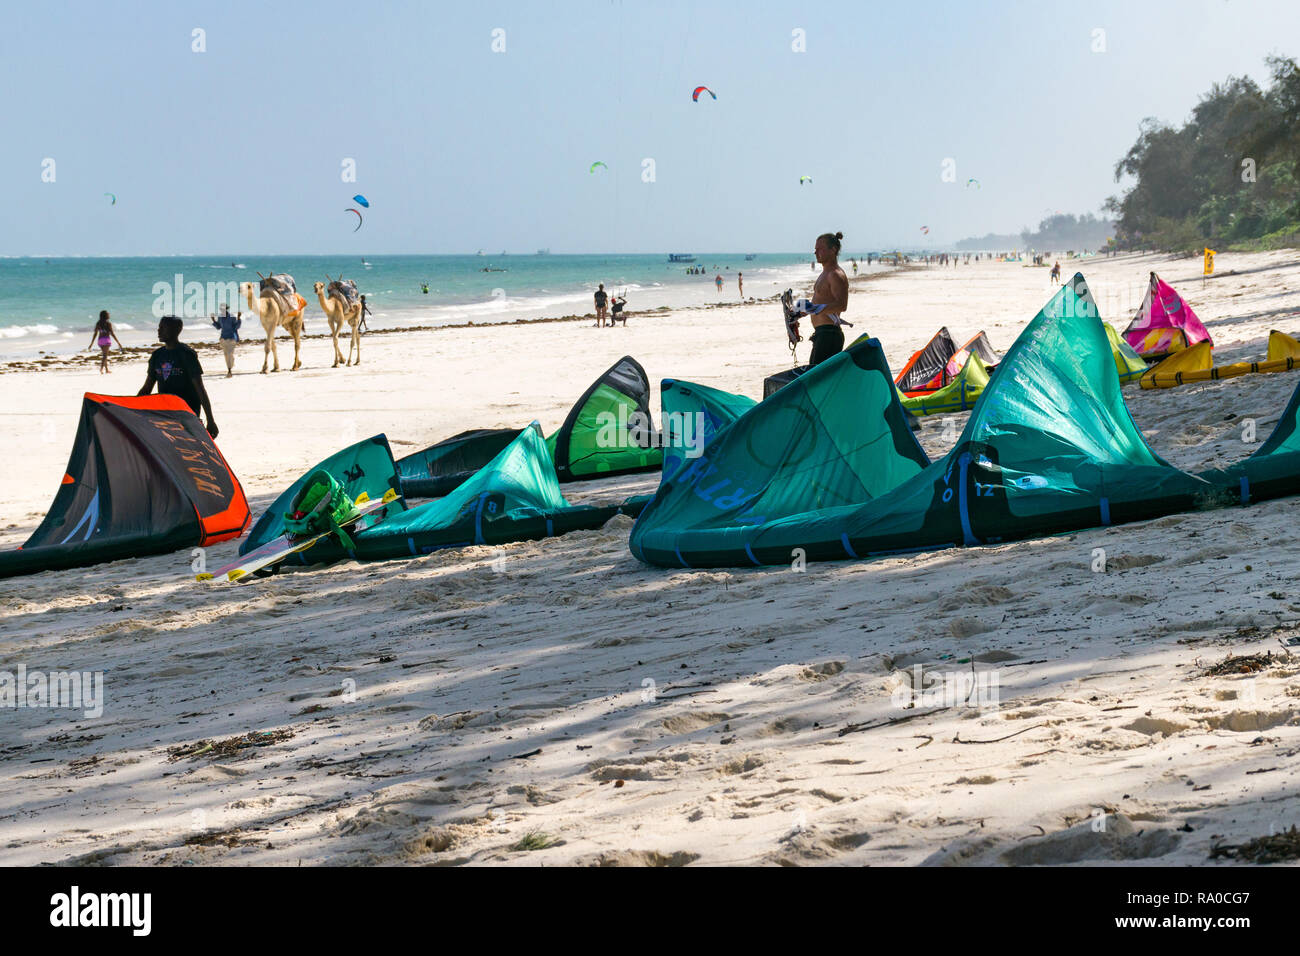 Several kitesurfing kites lie on the white sand beach with kitesurfers in the background in the Indian ocean, Diani, Kenya - Stock Image